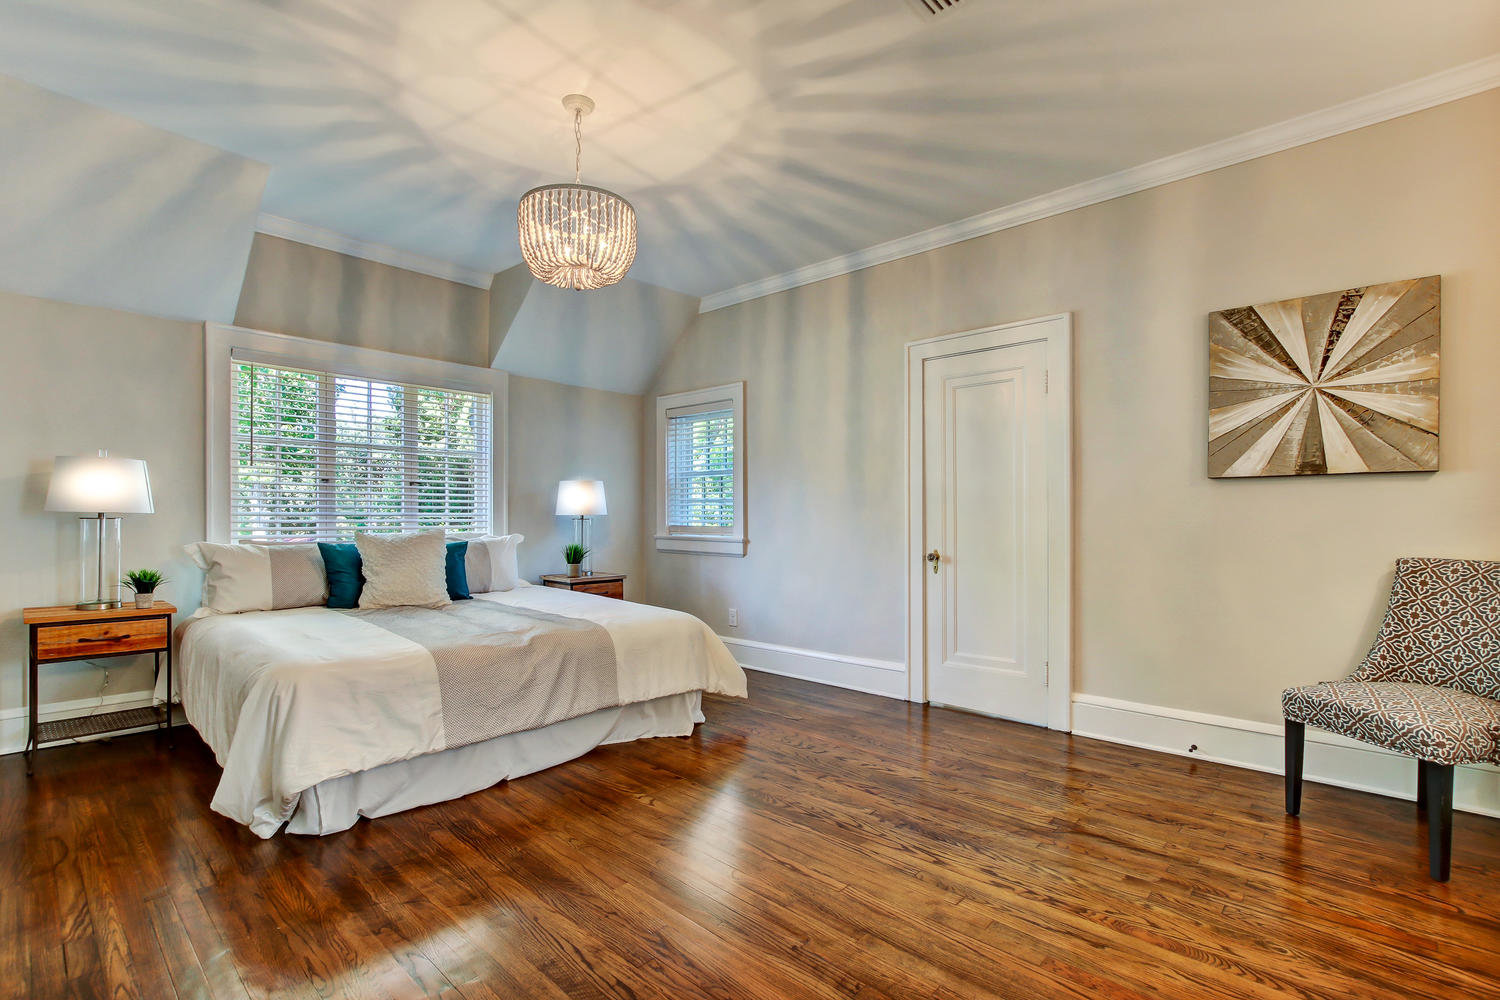 Master bedroom in Avondale home with original hardwood floors